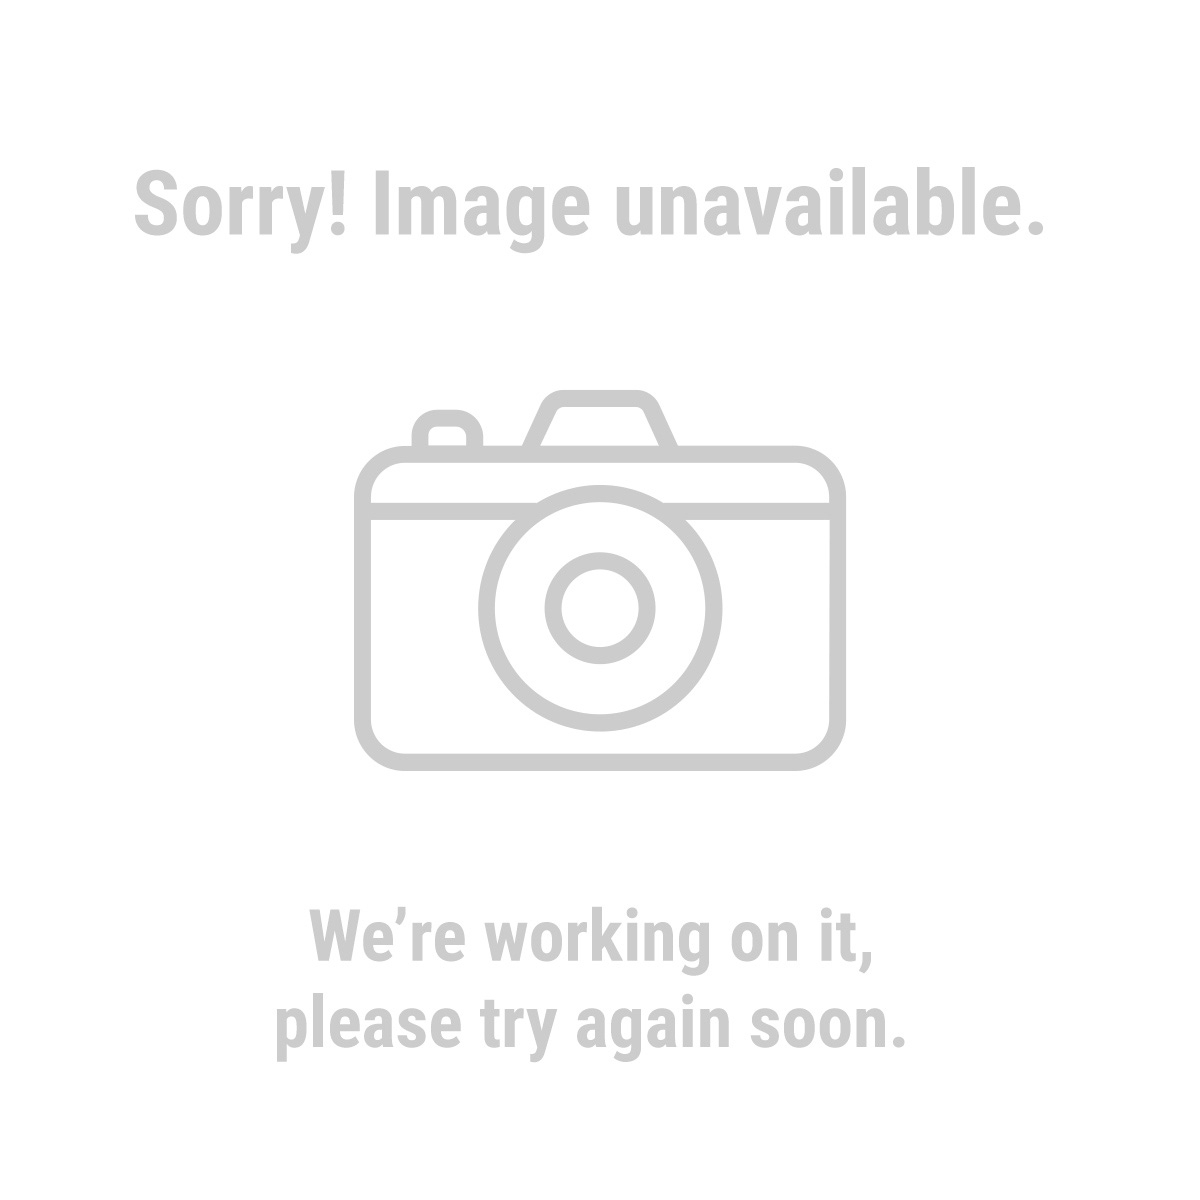 160 PSI HVLP Air Regulator